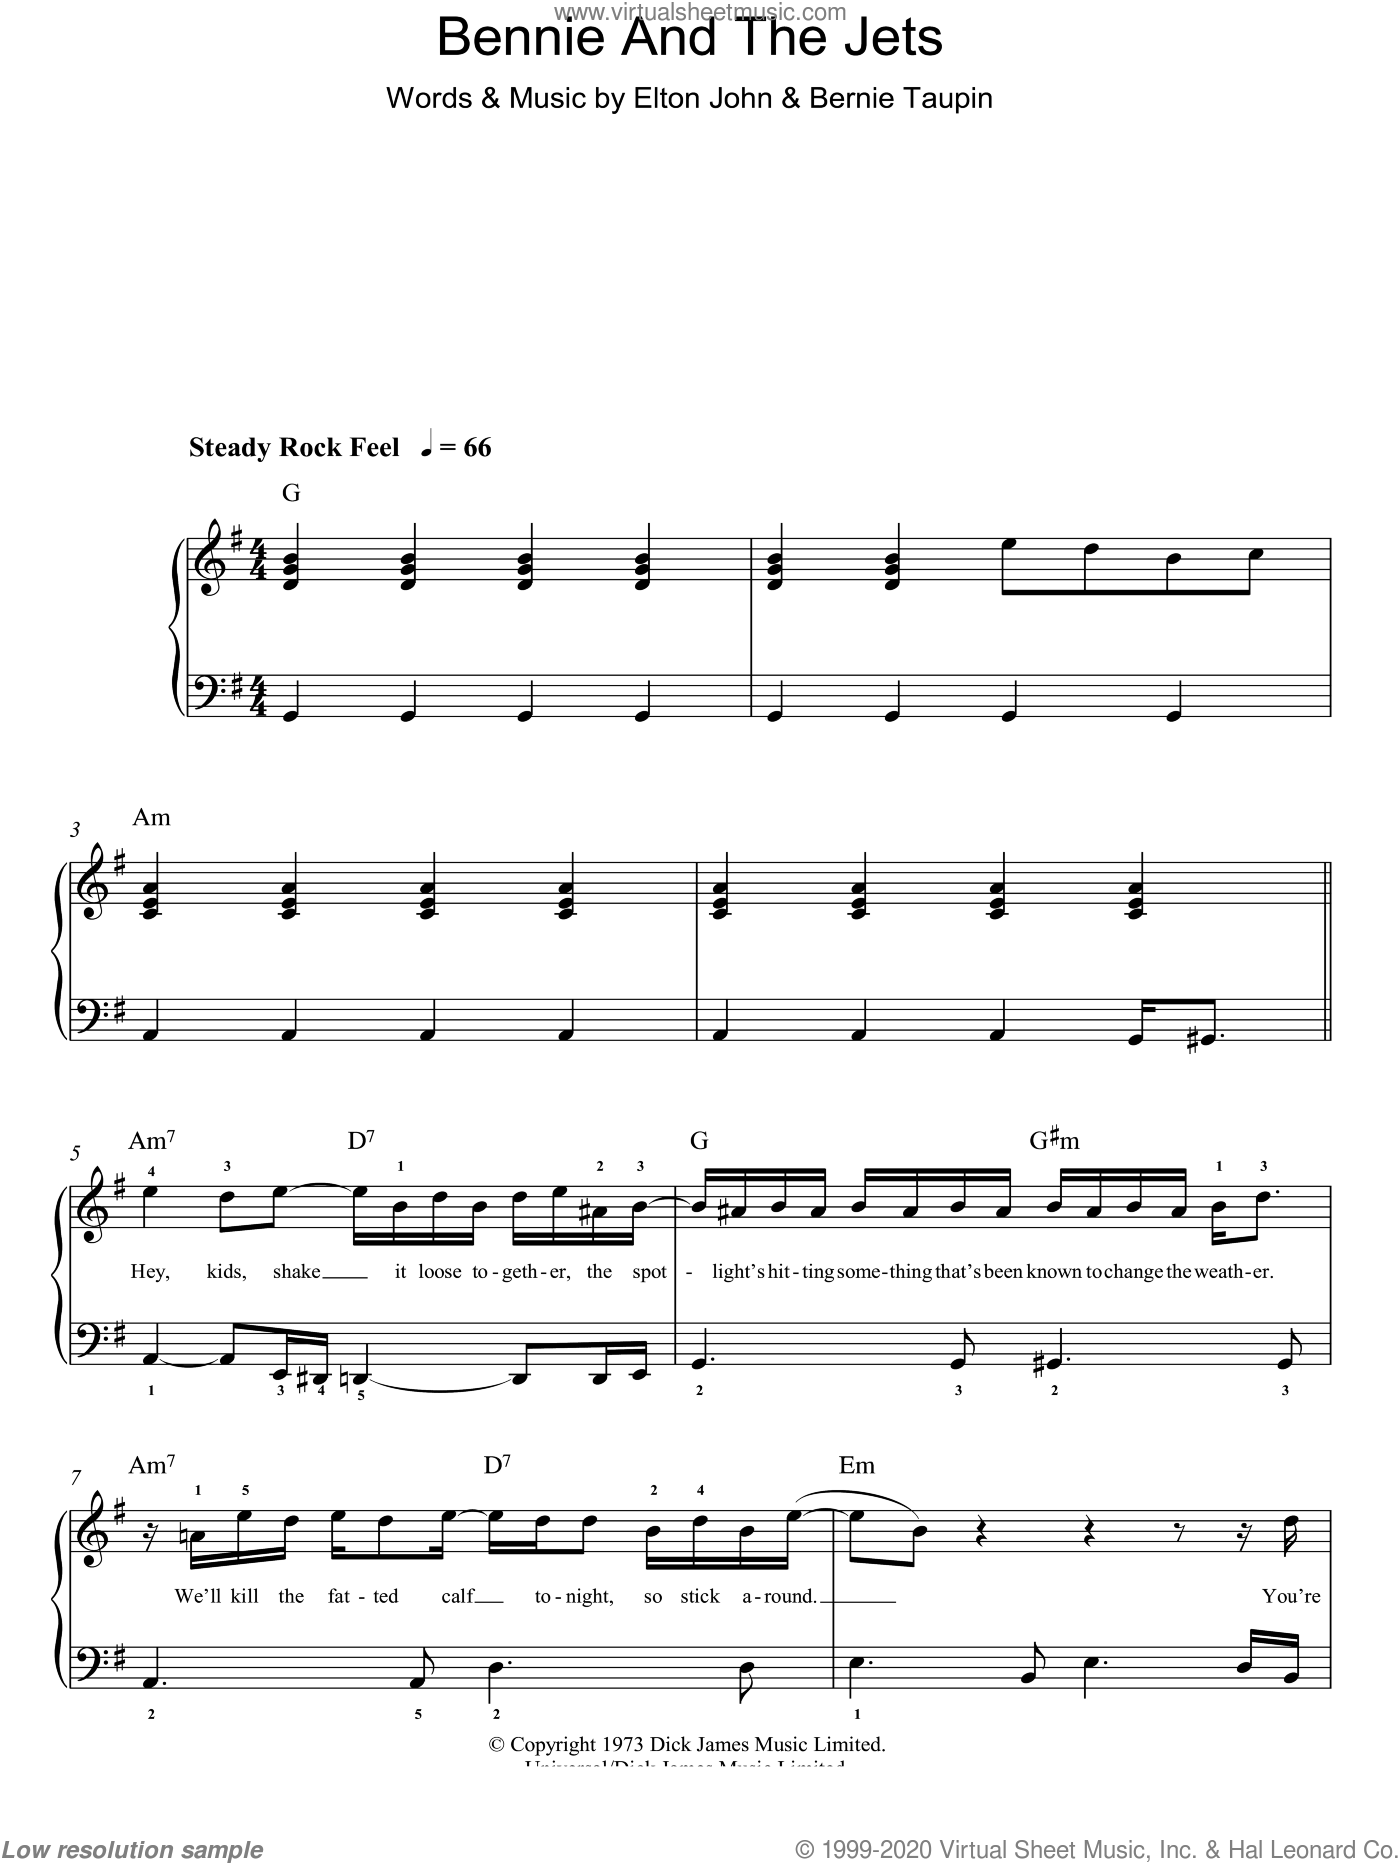 Bennie And The Jets sheet music for piano solo by Bernie Taupin and Elton John. Score Image Preview.